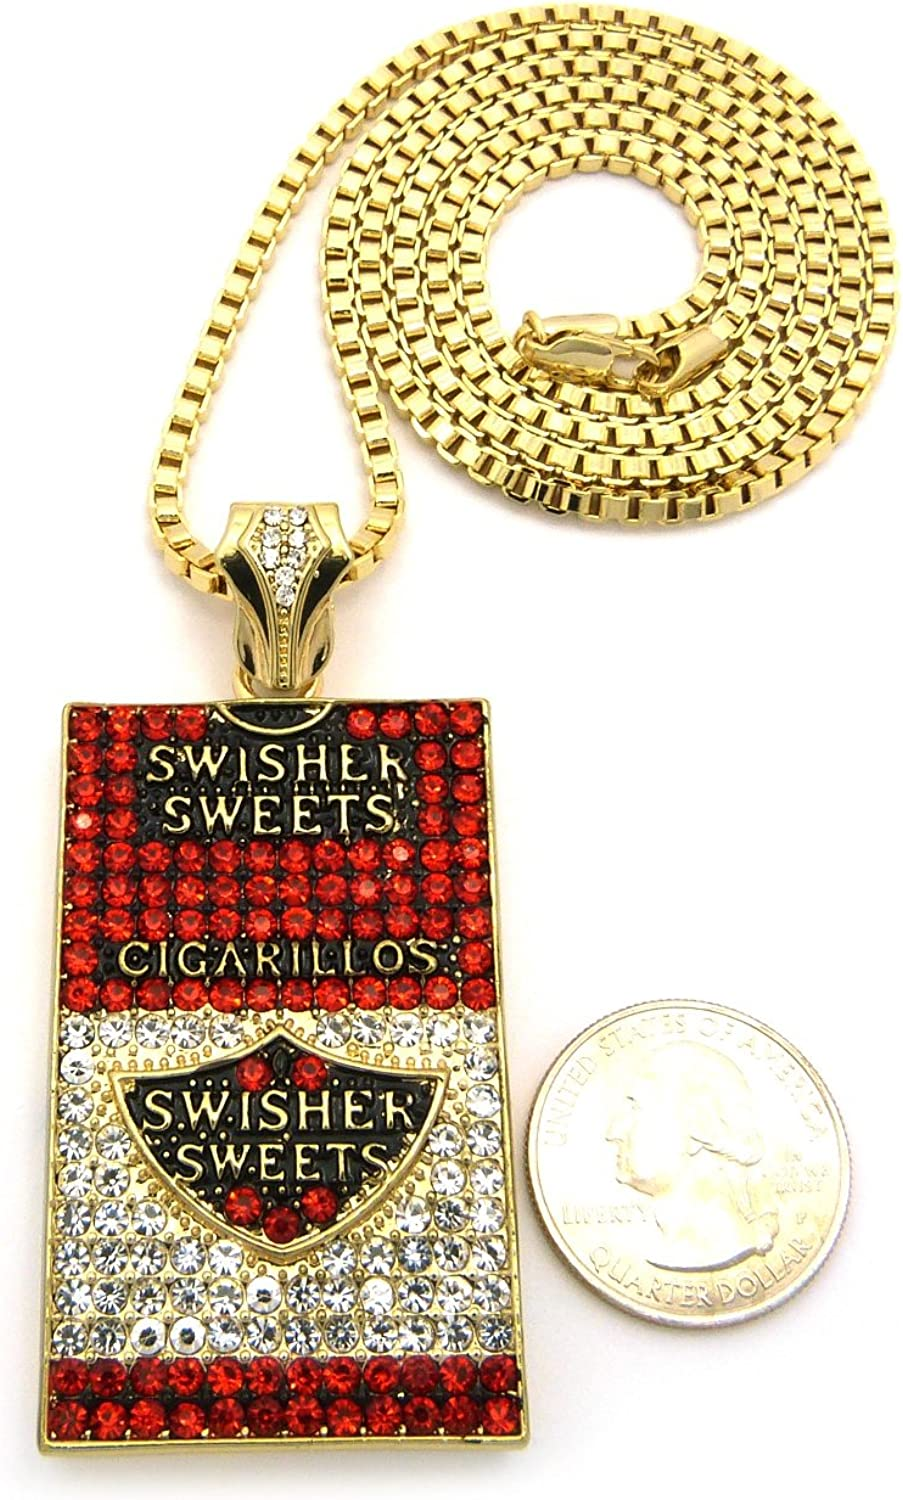 Mens Iced Out Hip Hop Gold Swisher Sweets Cigarillos Pendant Box Chain Necklace